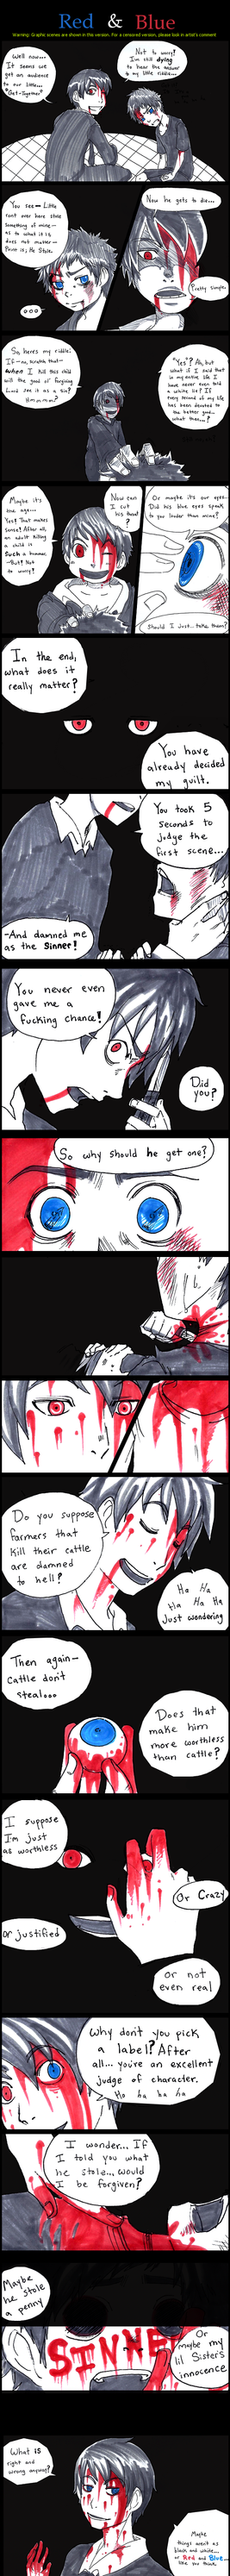 Red + Blue [Full Story] by AmukaUroy